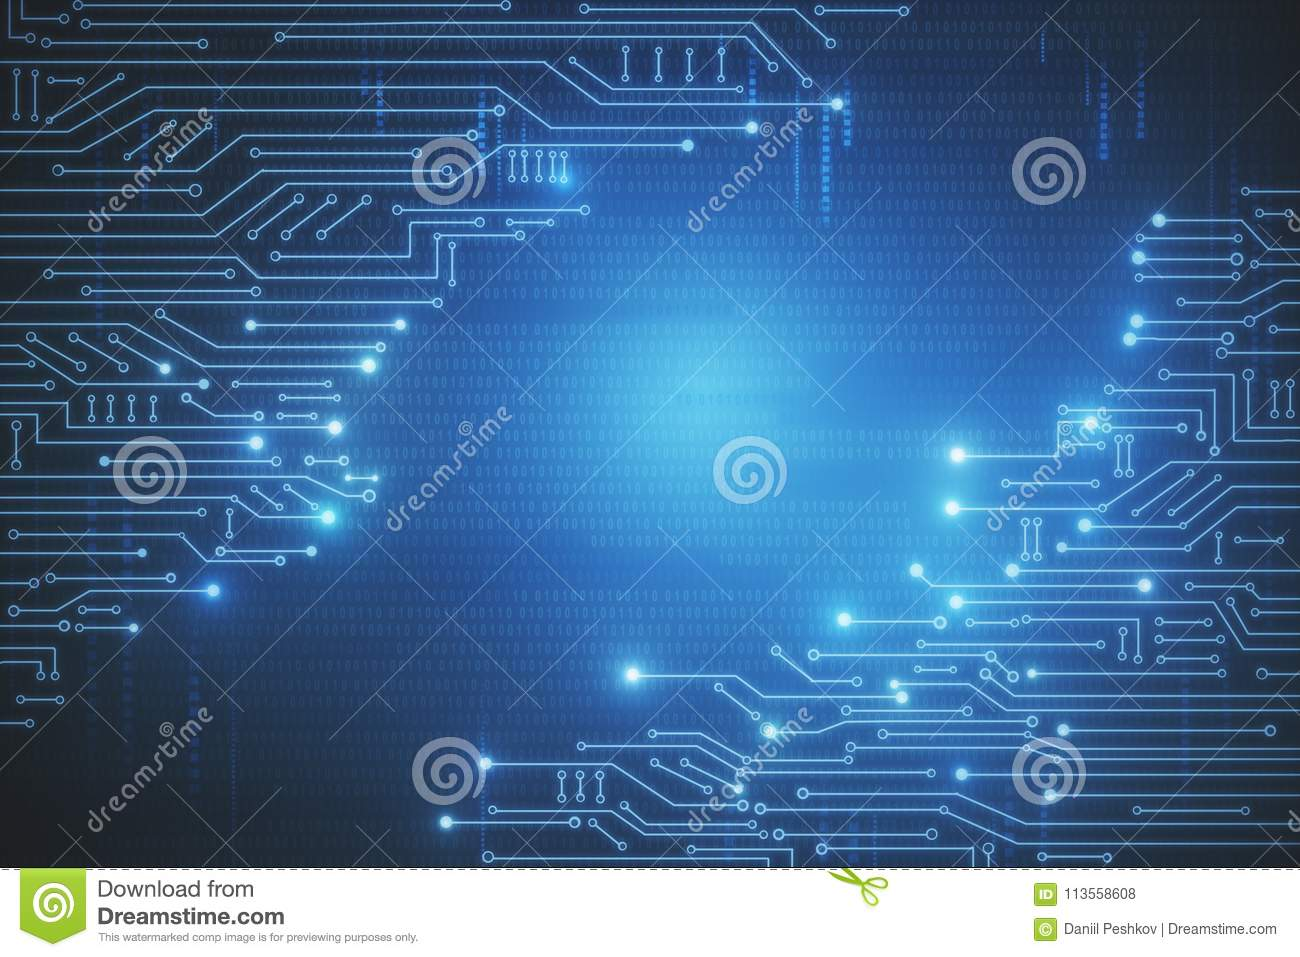 Creative circuit wallpaper stock illustration. Illustration of blue on